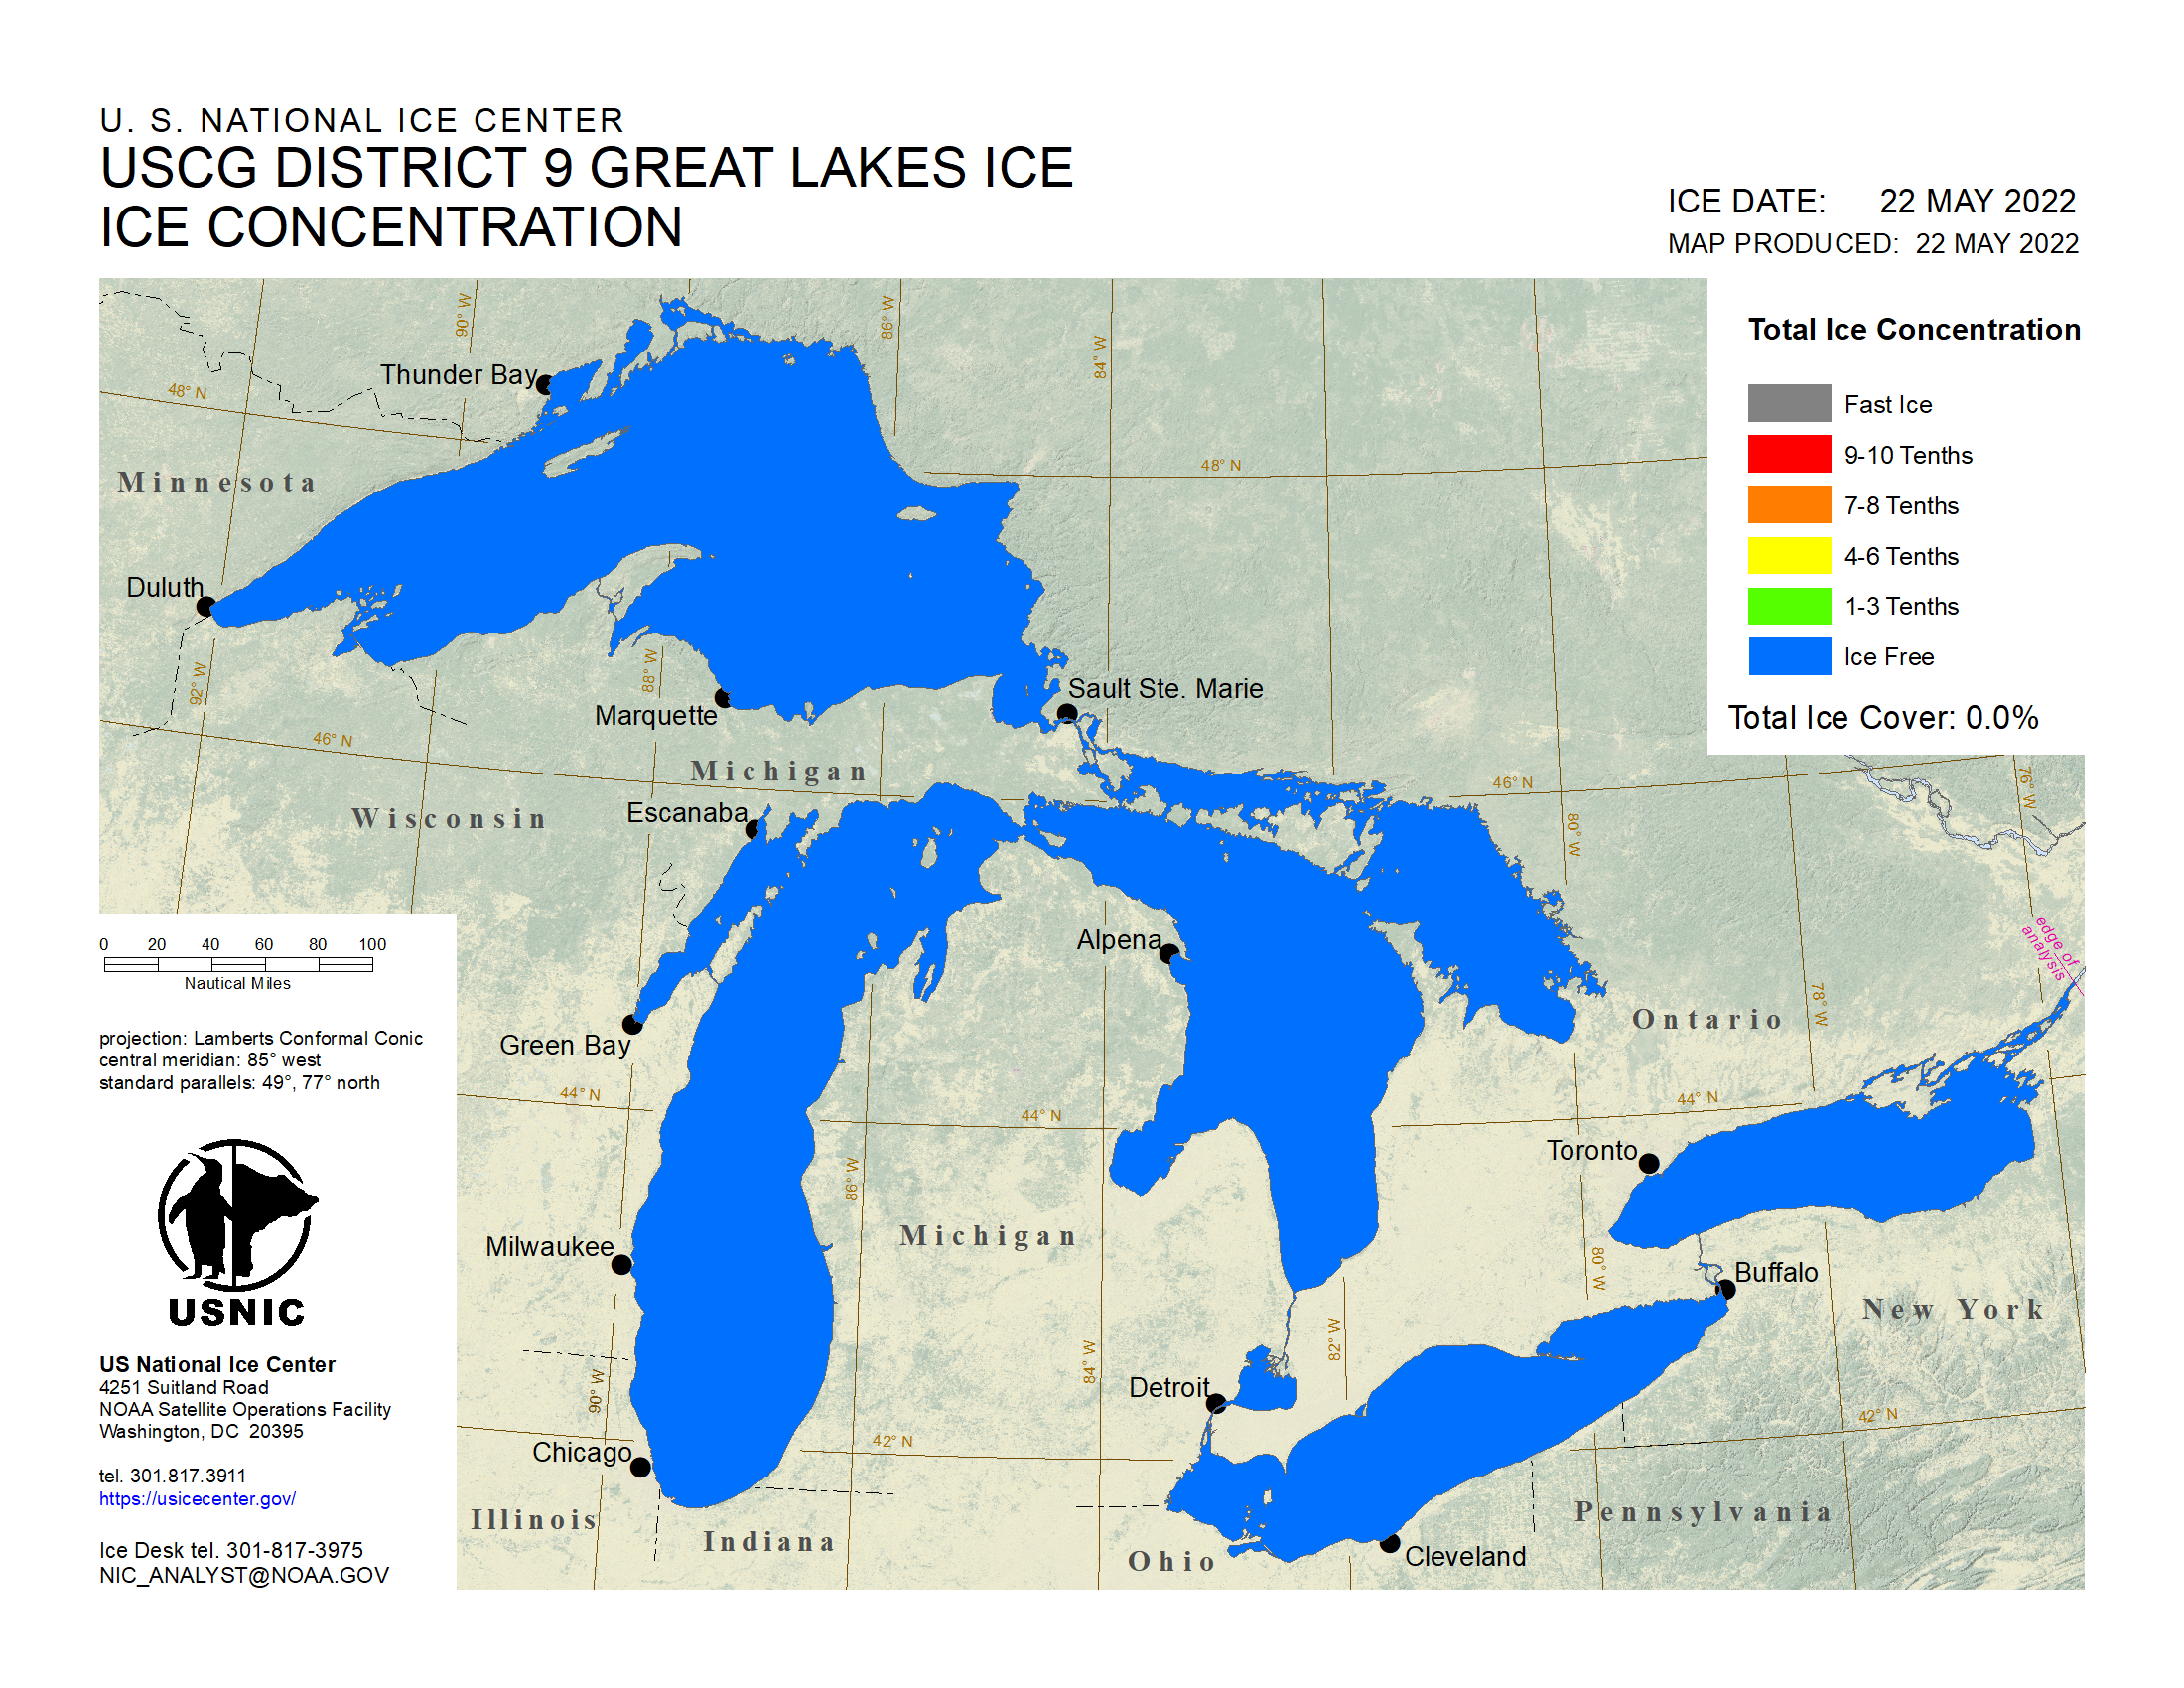 Current Great Lakes Ice Concentration